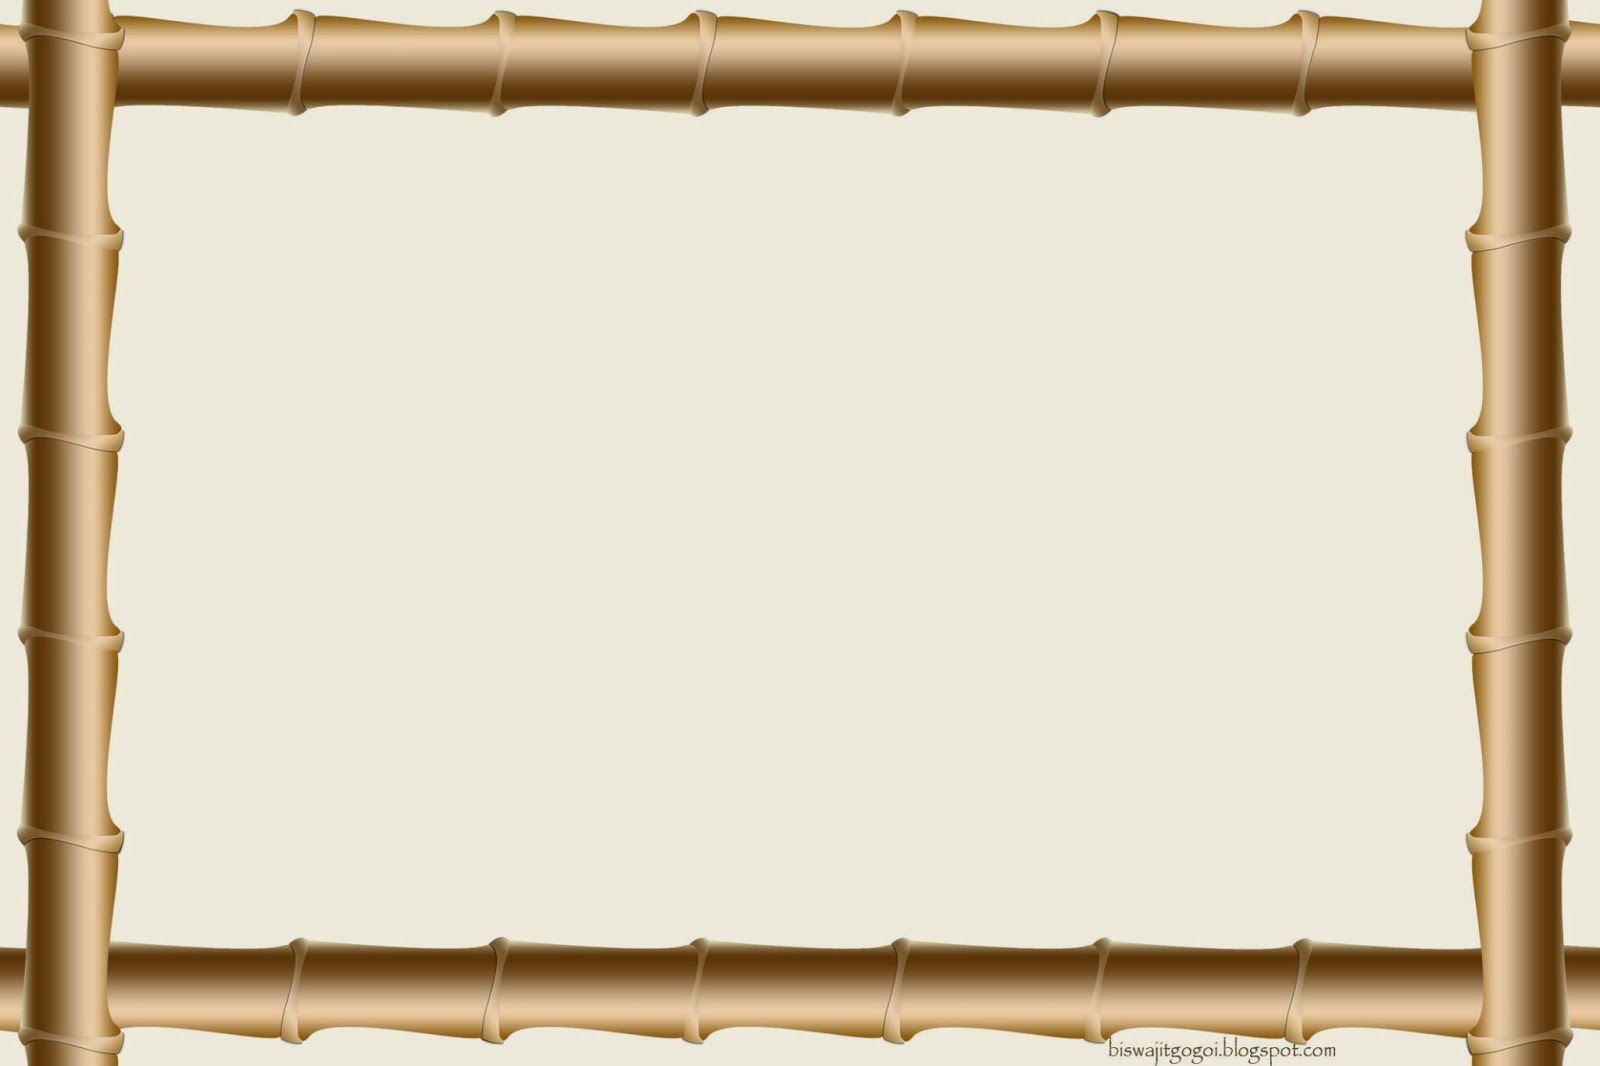 Bamboo clipart wooden frame. Picture frames design personalized